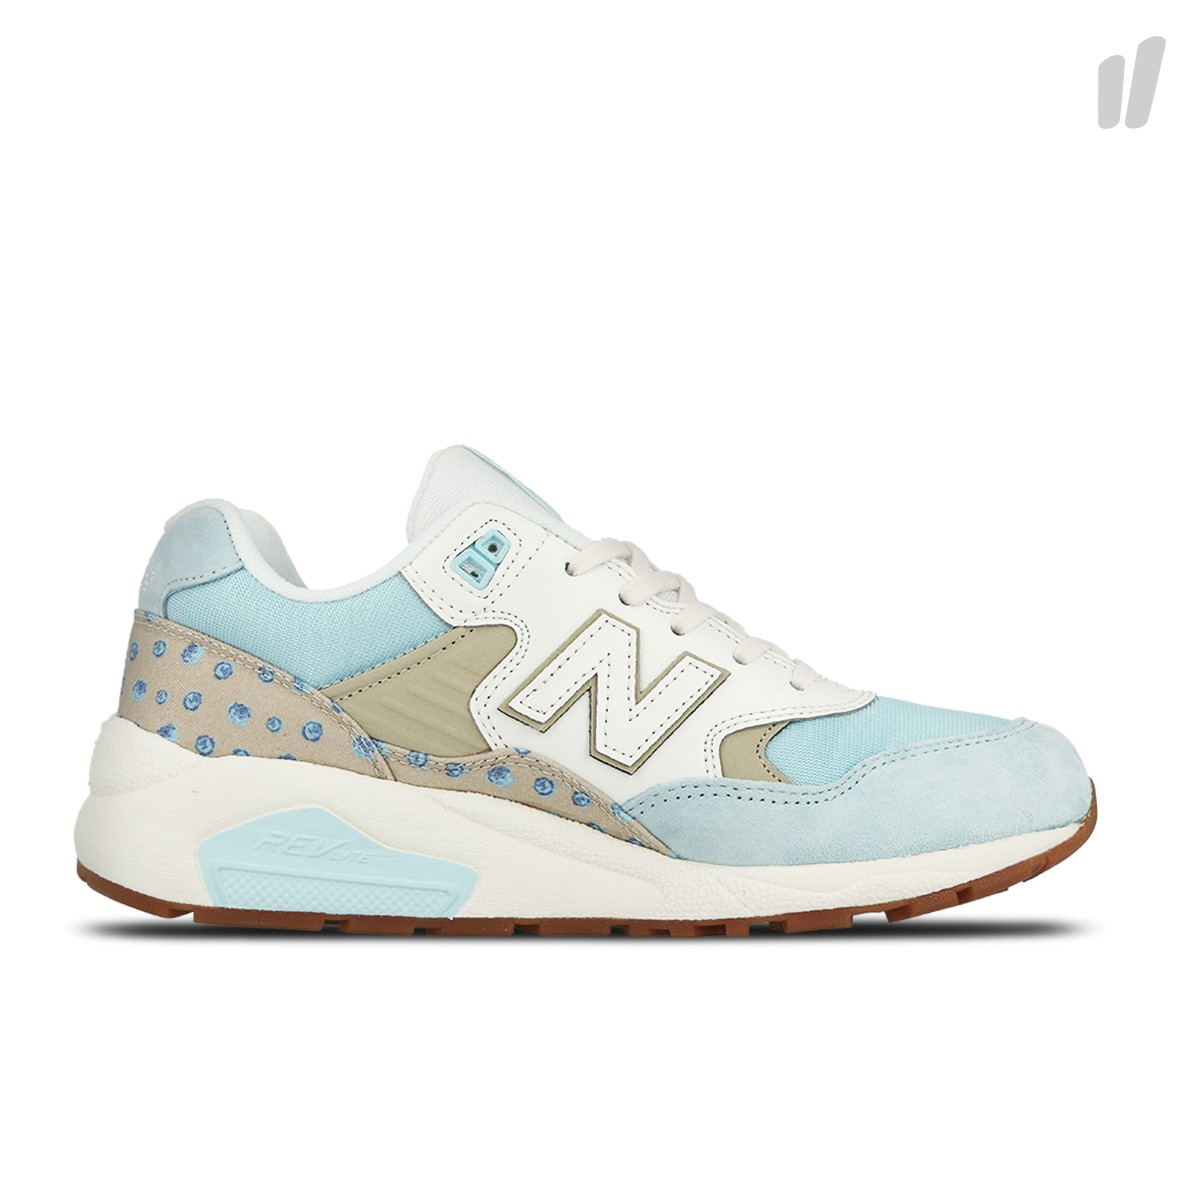 blauwe new balance sneakers wrt580